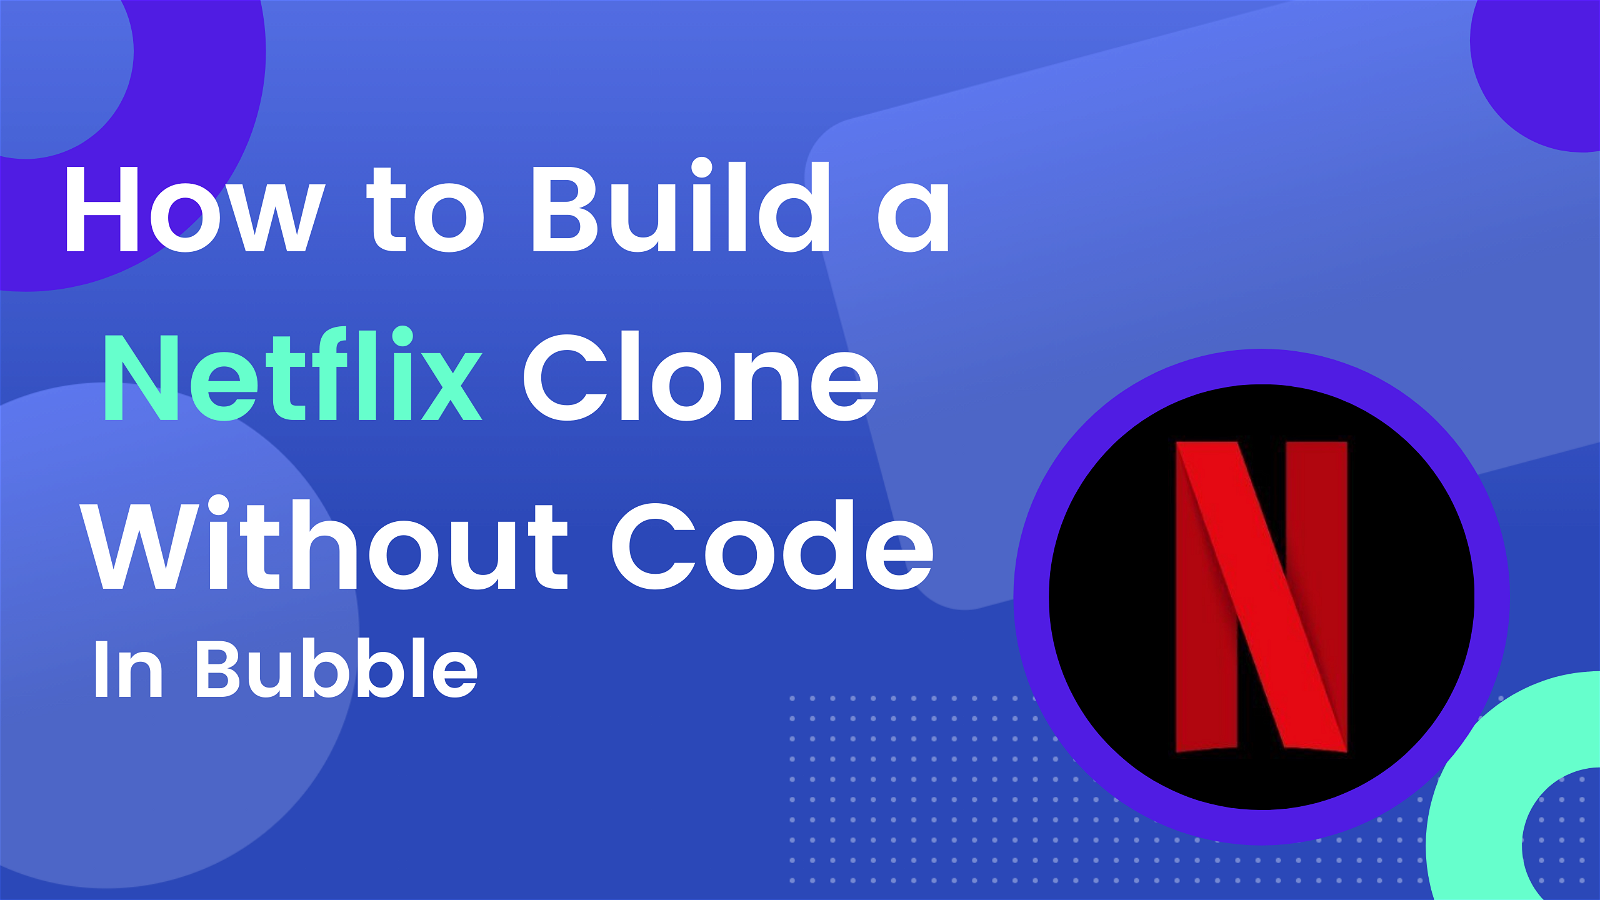 How to build a Netflix clone without code Banner